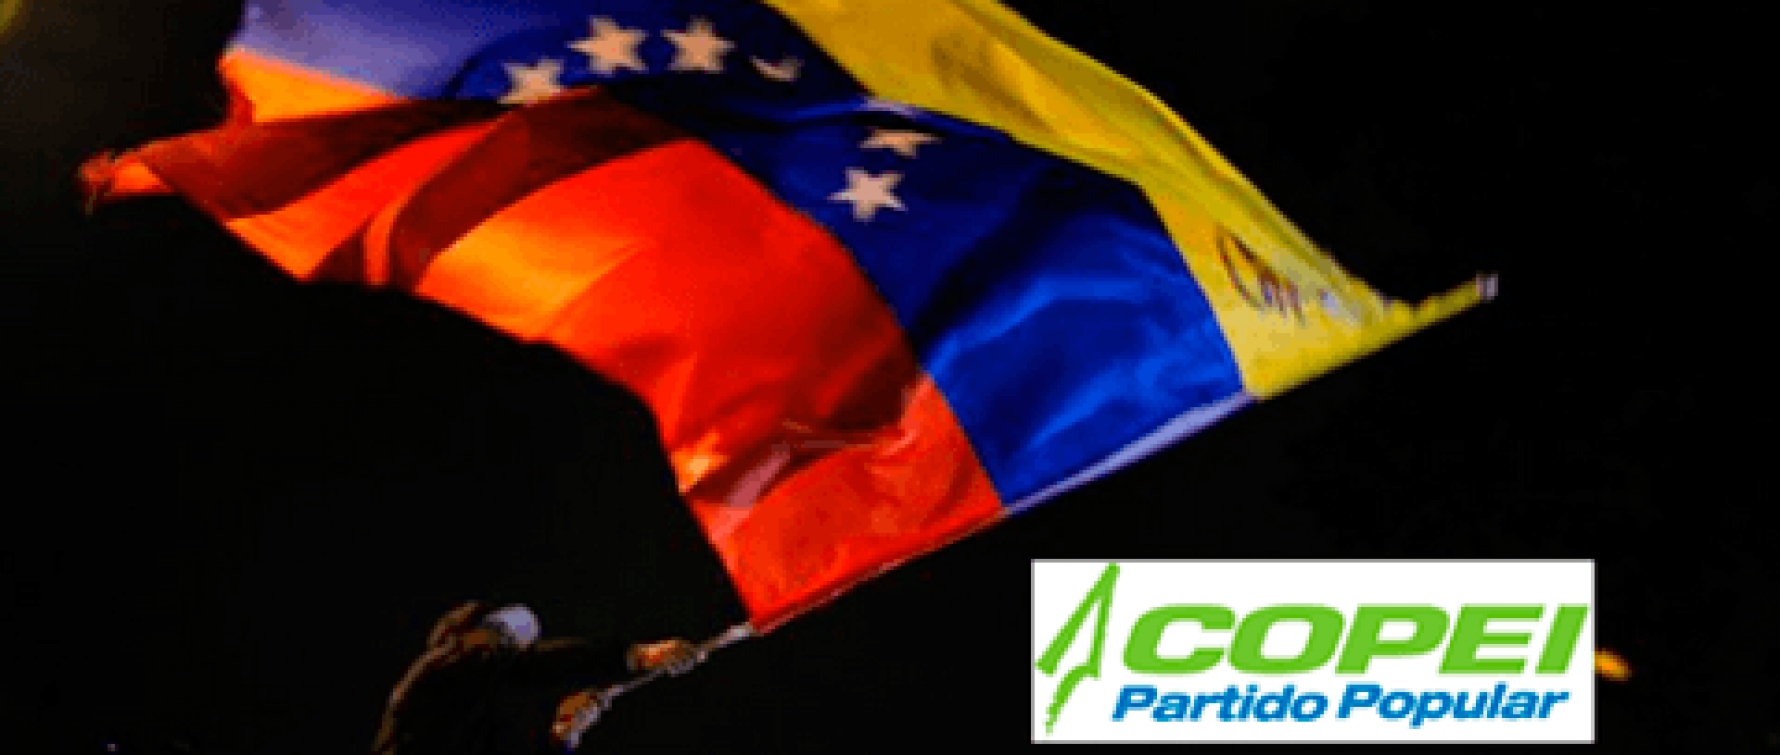 CDI-IDC welcomes the recent electoral victory of the Democratic Unity Coalition (MUD) in Venezuela